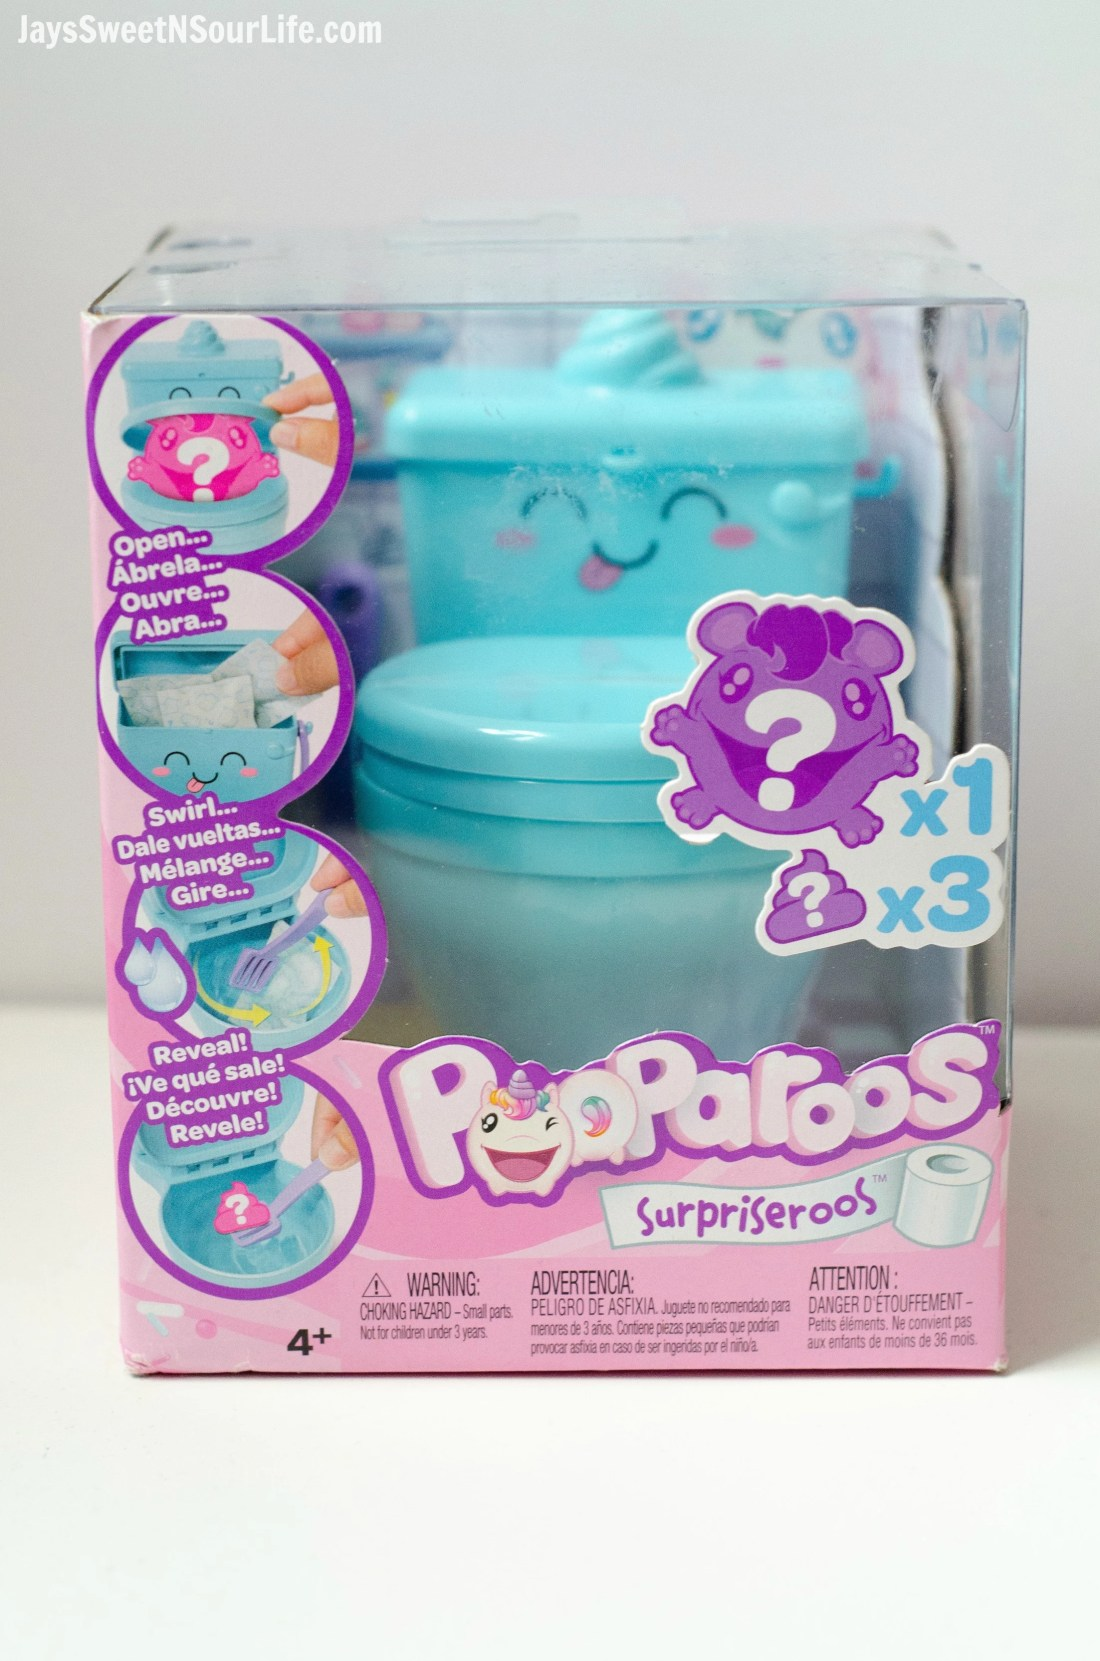 Pooparoos Packaging, full unboxing video and review. Pooparoos are full of fun surprises and tons of fun for all.